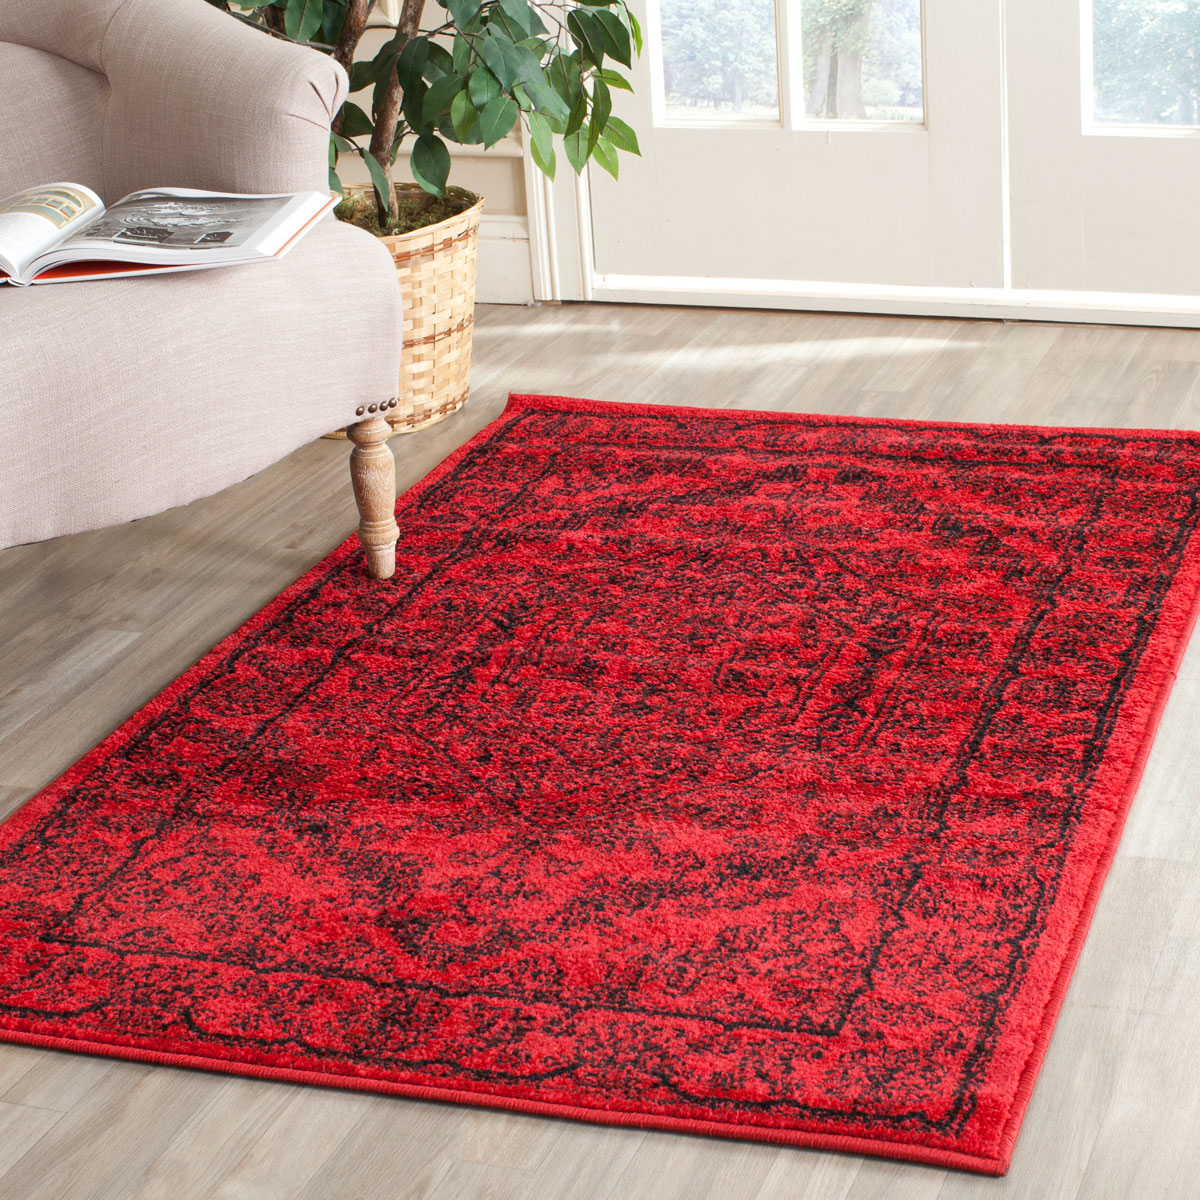 100 8 by 10 carpet tips mesmerizing lowes rug pad for chic